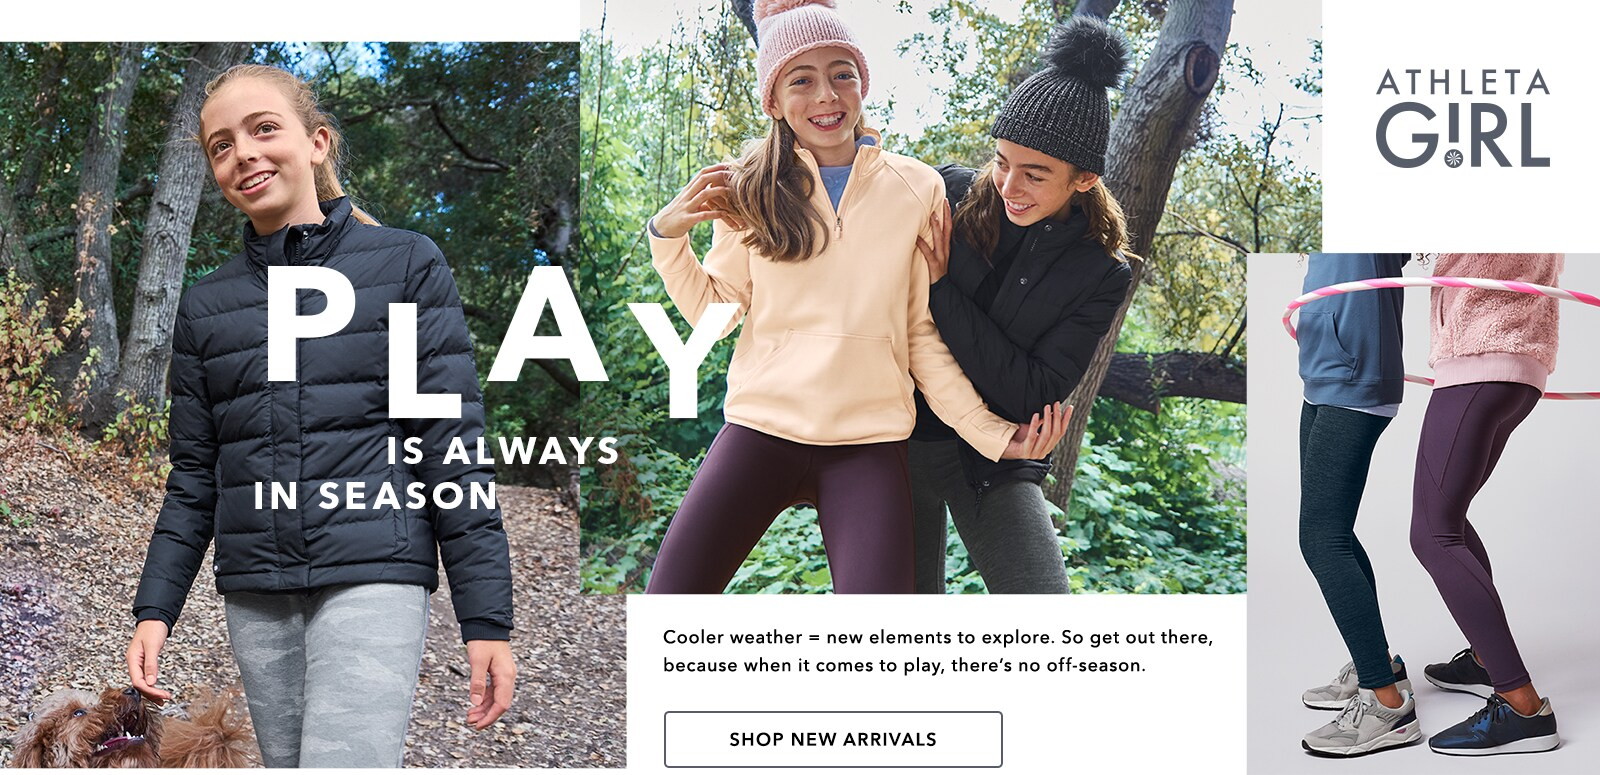 girls playing outside in athleta wear